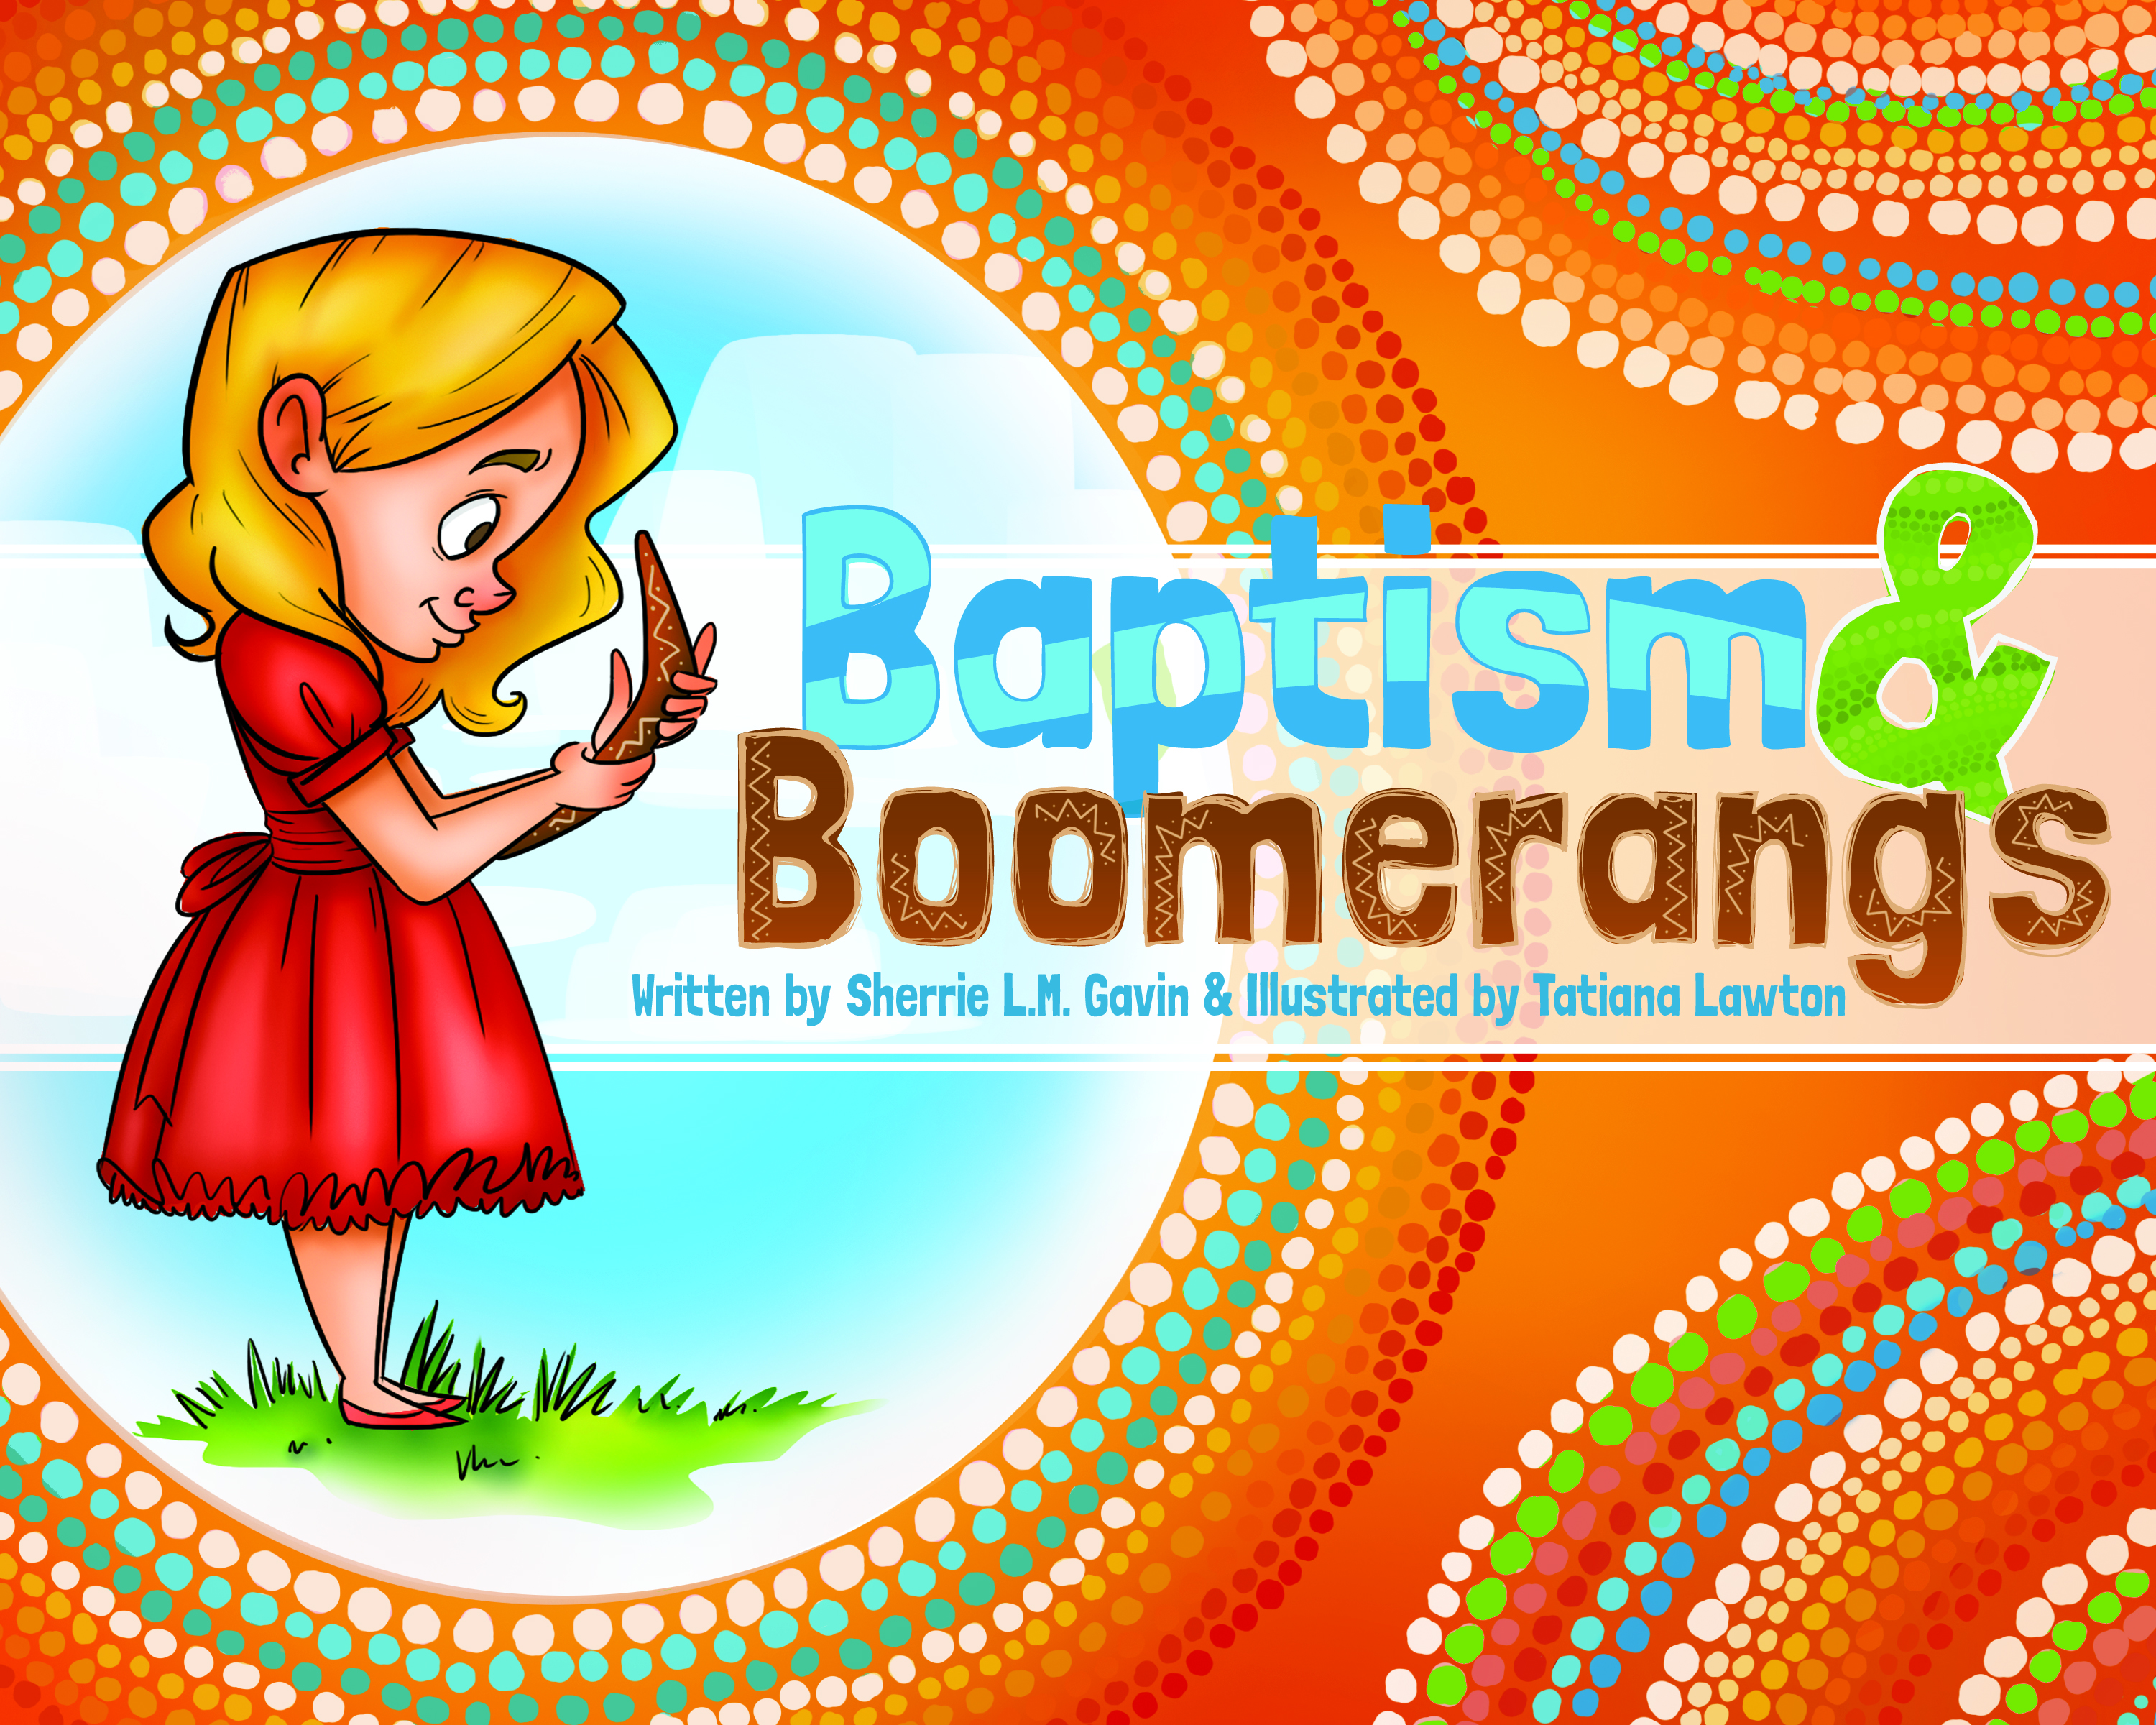 Baptism and Boomerangs Blog Tour